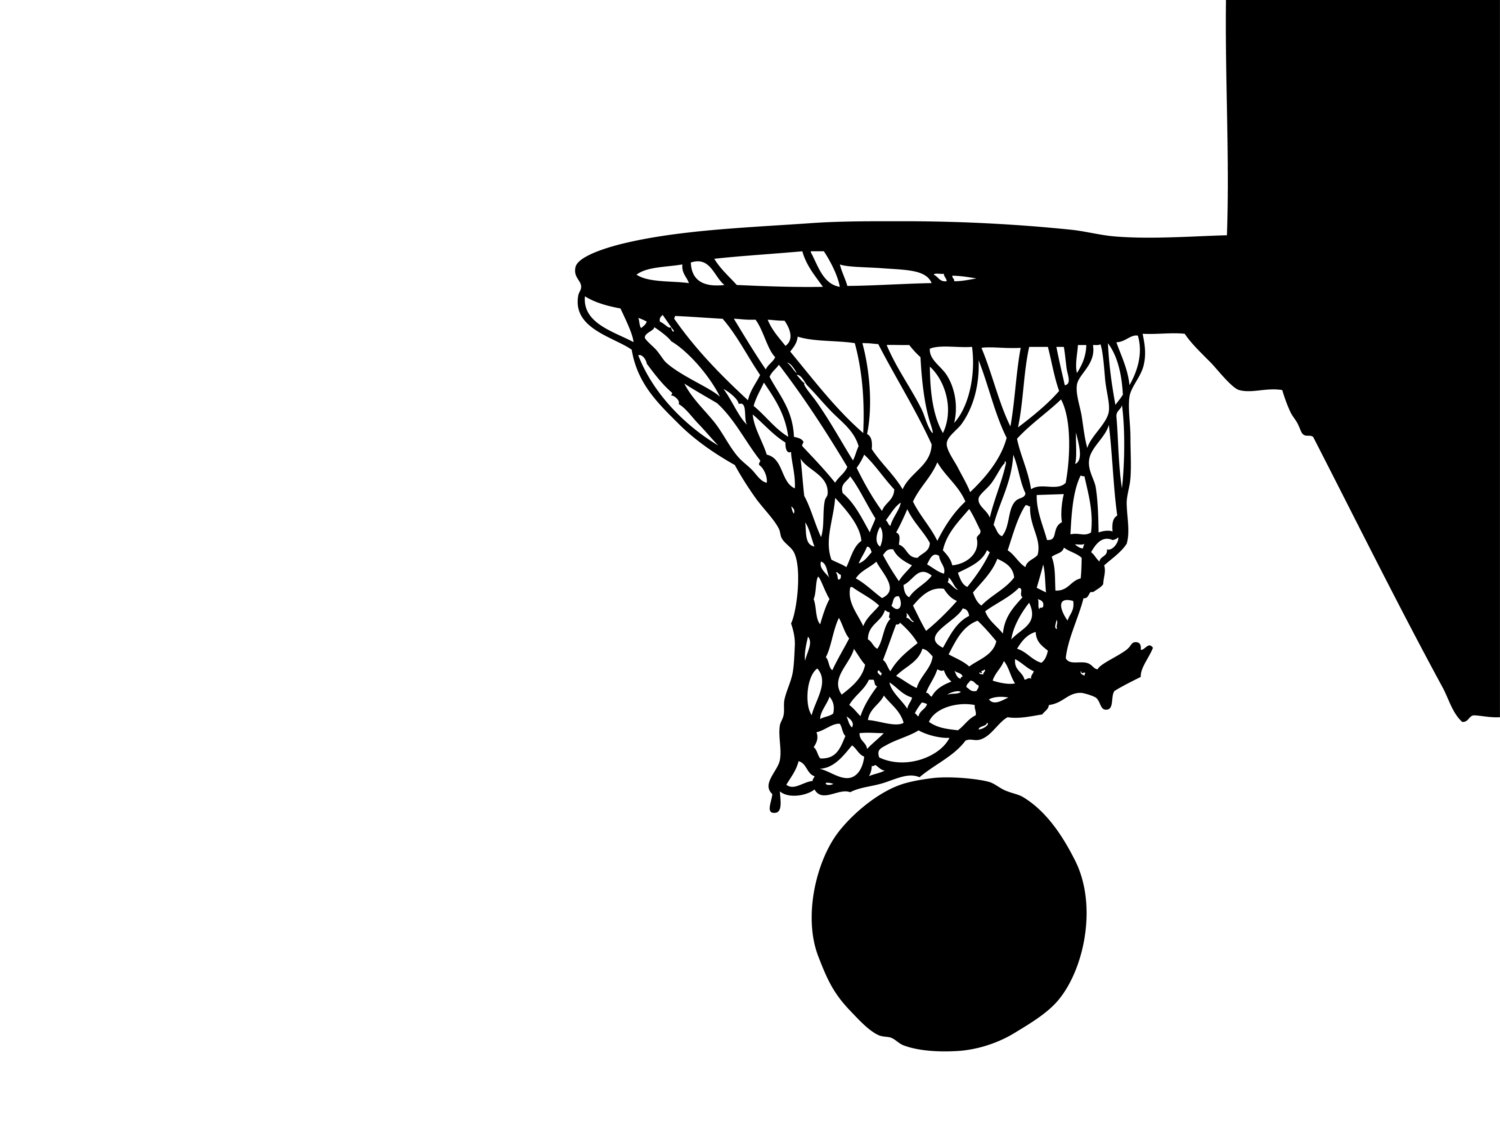 Basketball and hoop clipart black and white clip art library stock Free Basketball Hoop Cliparts, Download Free Clip Art, Free Clip Art ... clip art library stock